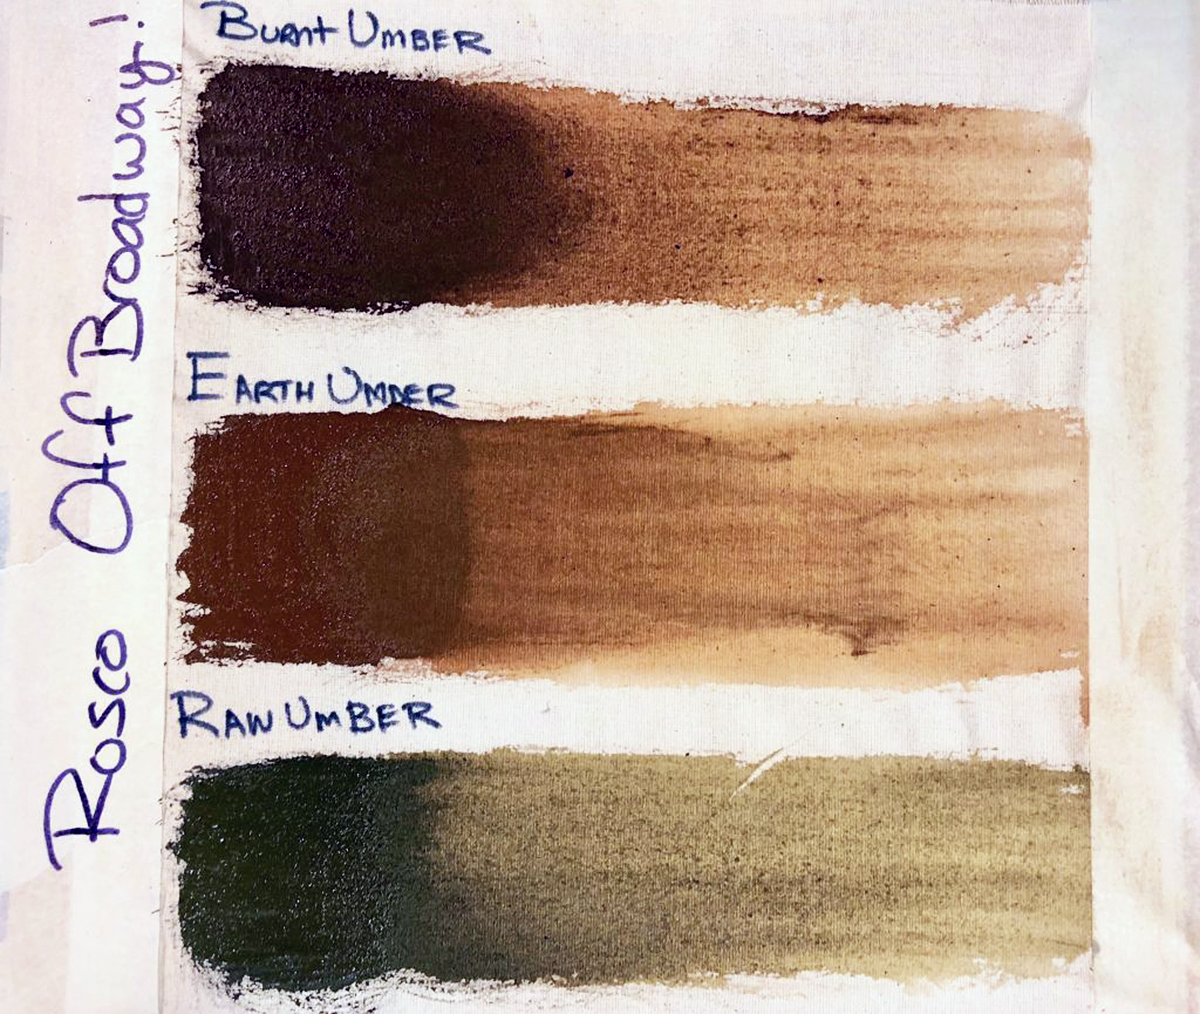 Comparing three Off Broadway earth tones, Burnt Umber, Earth Umber and Raw Umber.